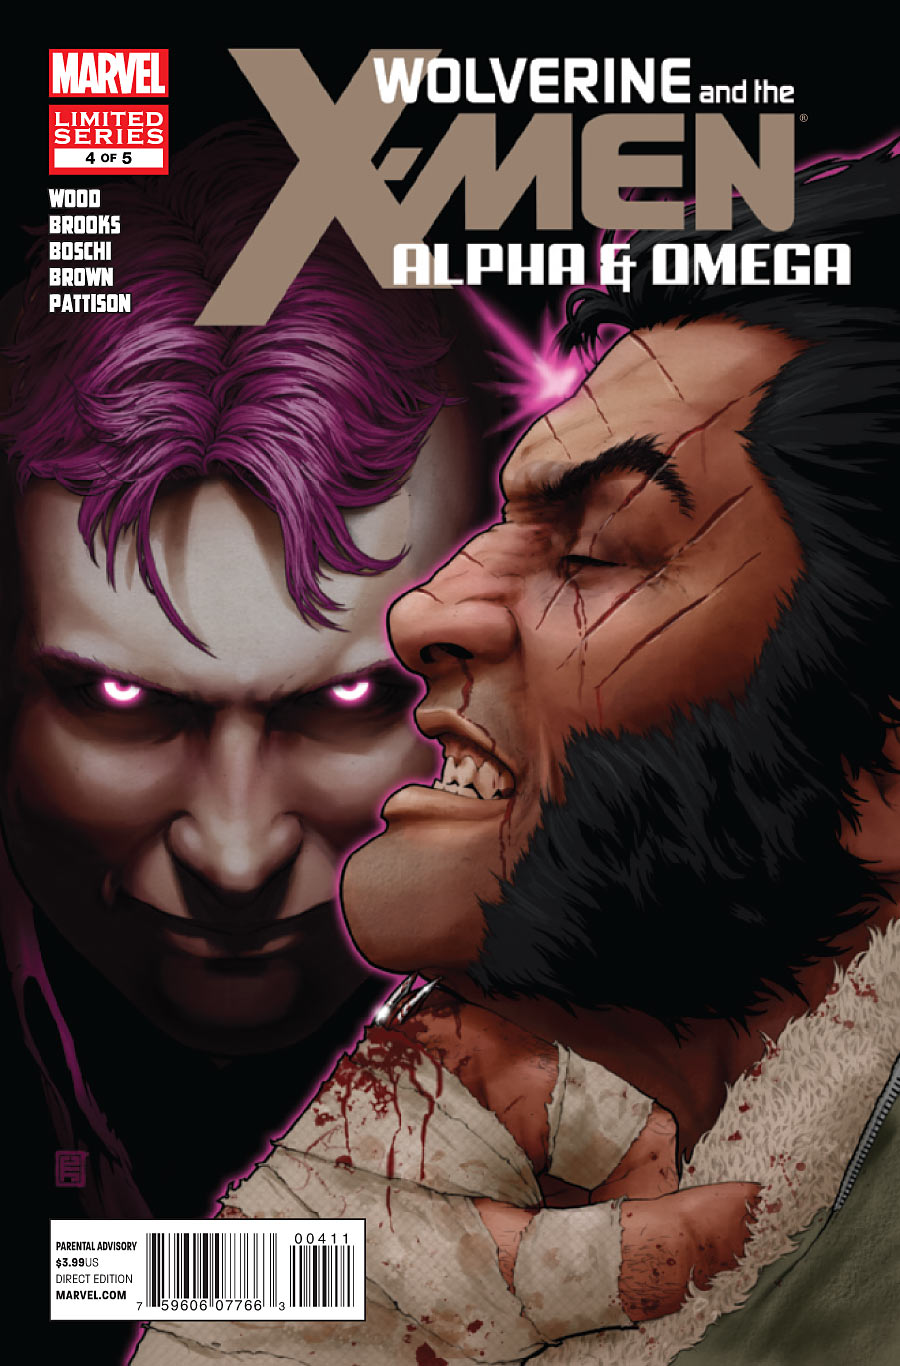 Wolverine and the X-Men: Alpha & Omega Vol 1 4